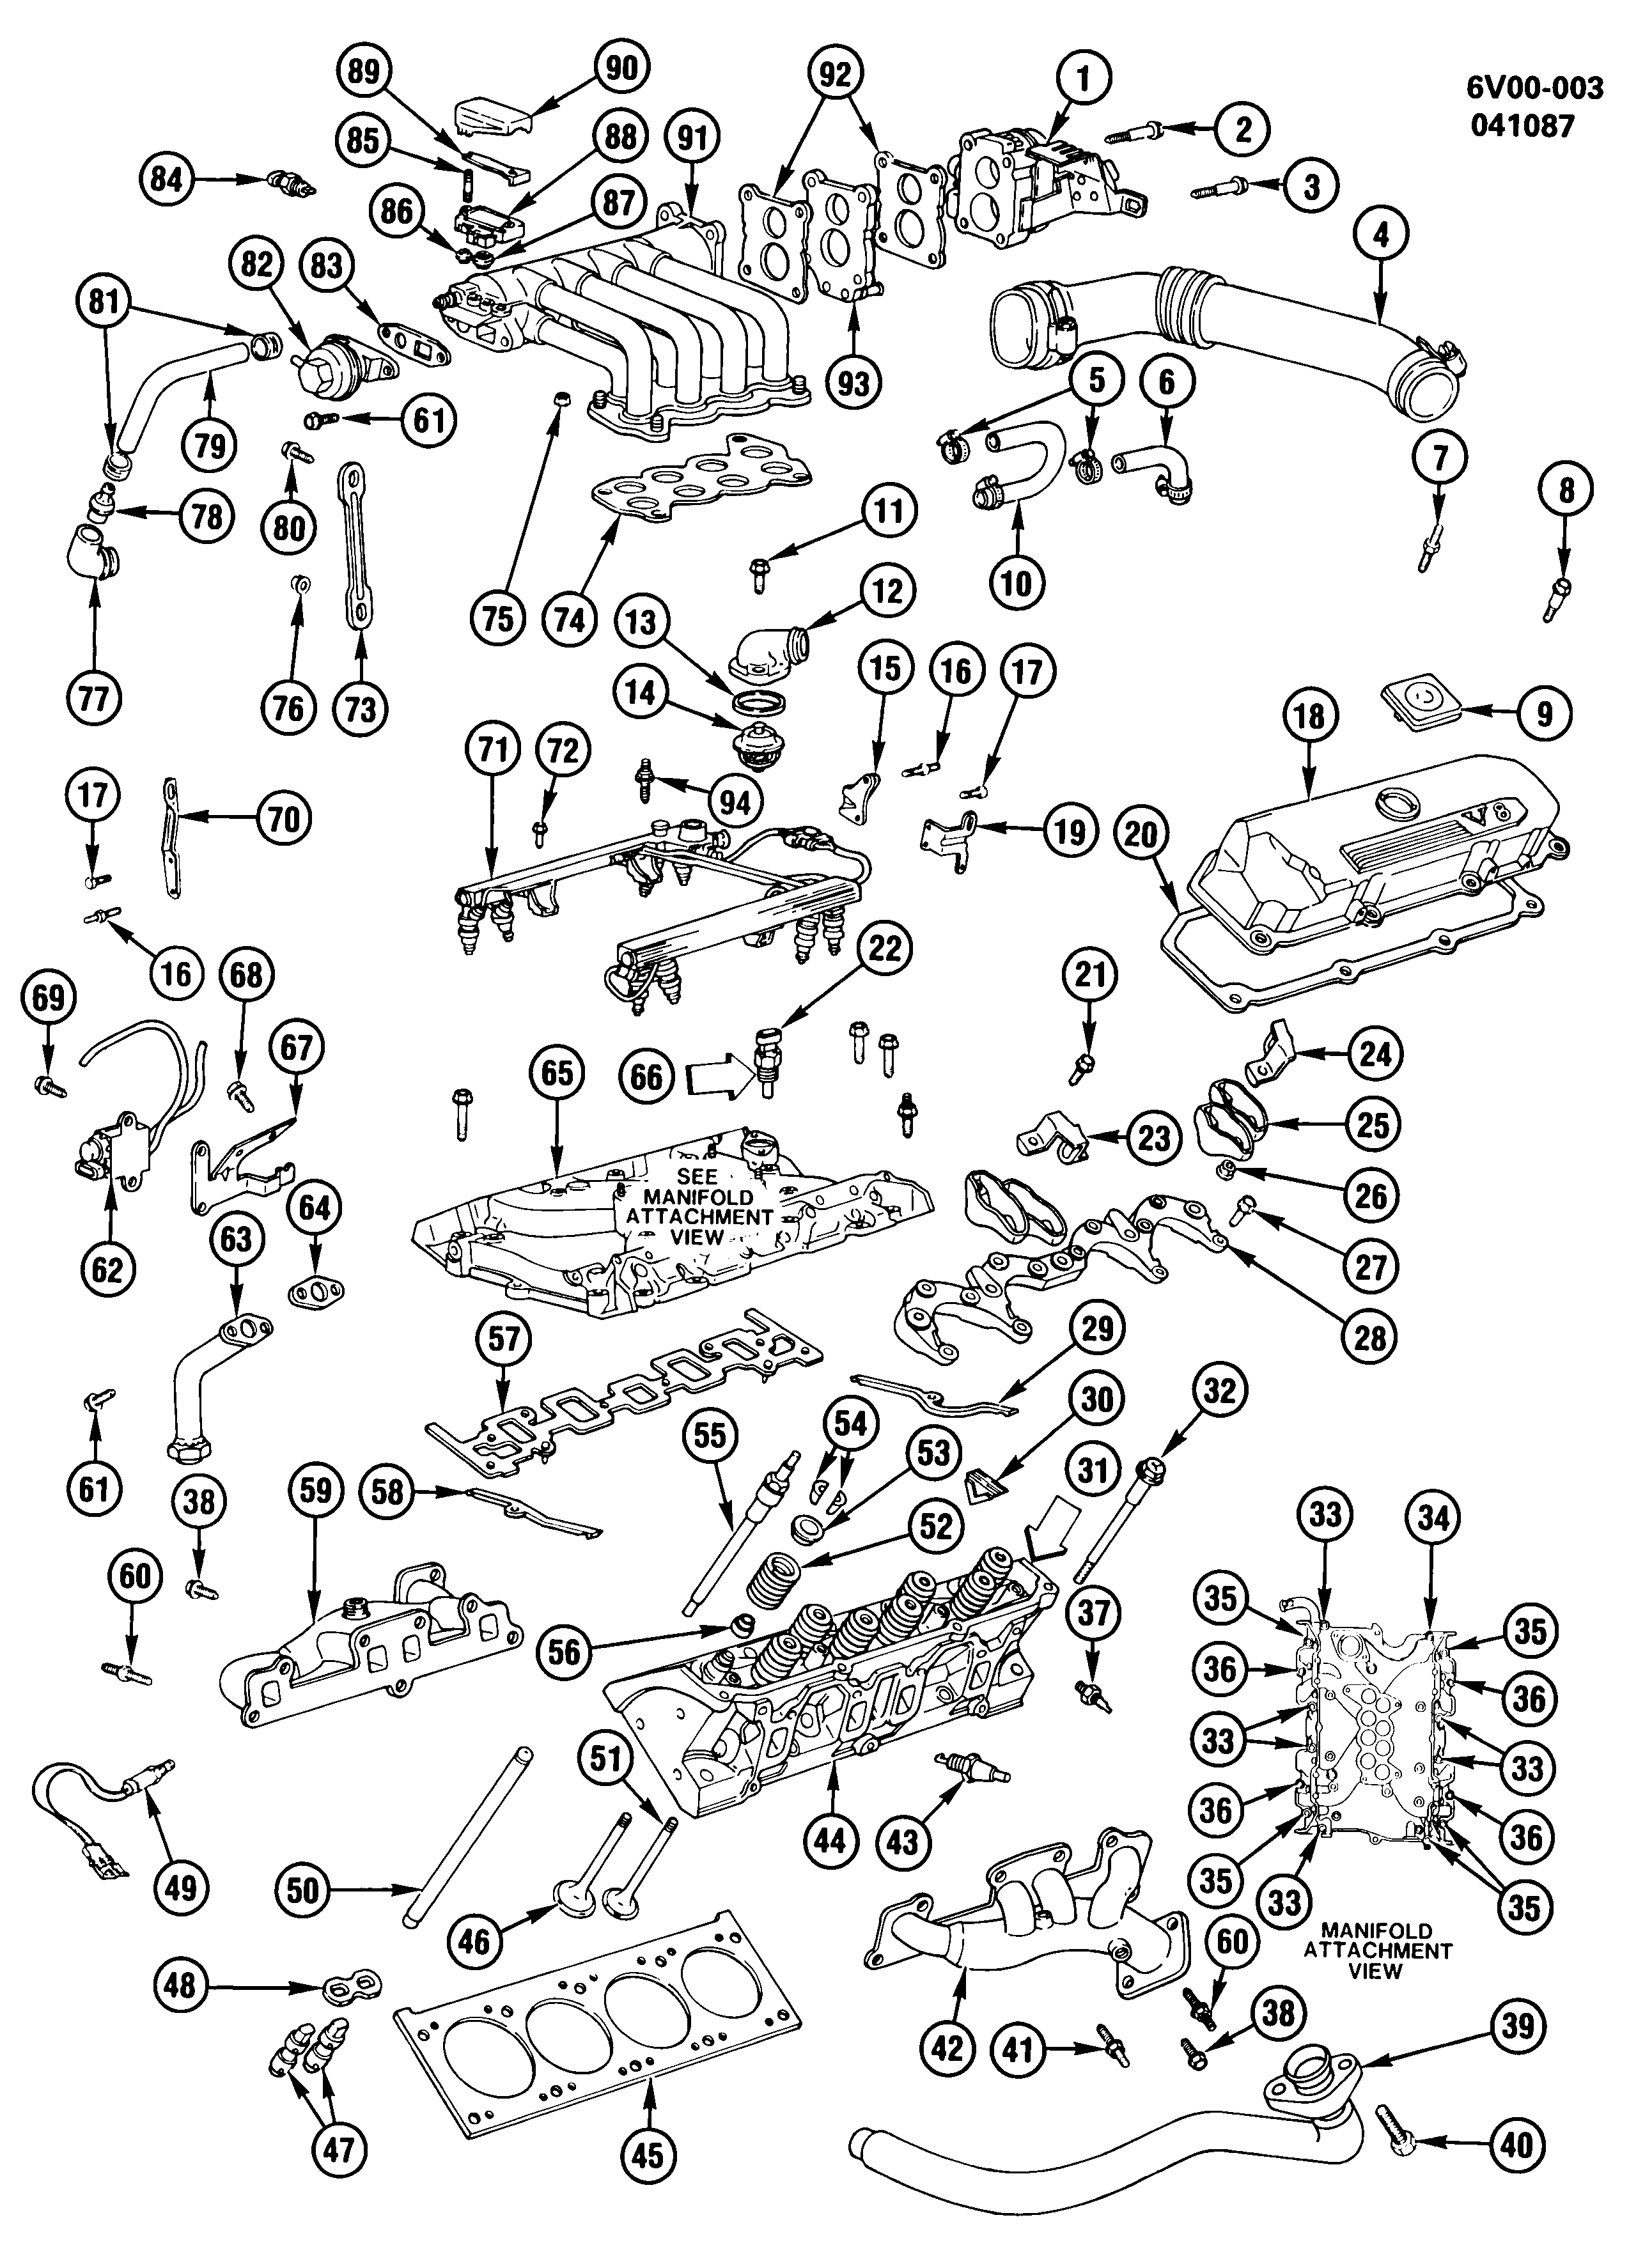 1987-1988 V ENGINE ASM-4.1L V8 PART 2 (LC7/4.1-7)